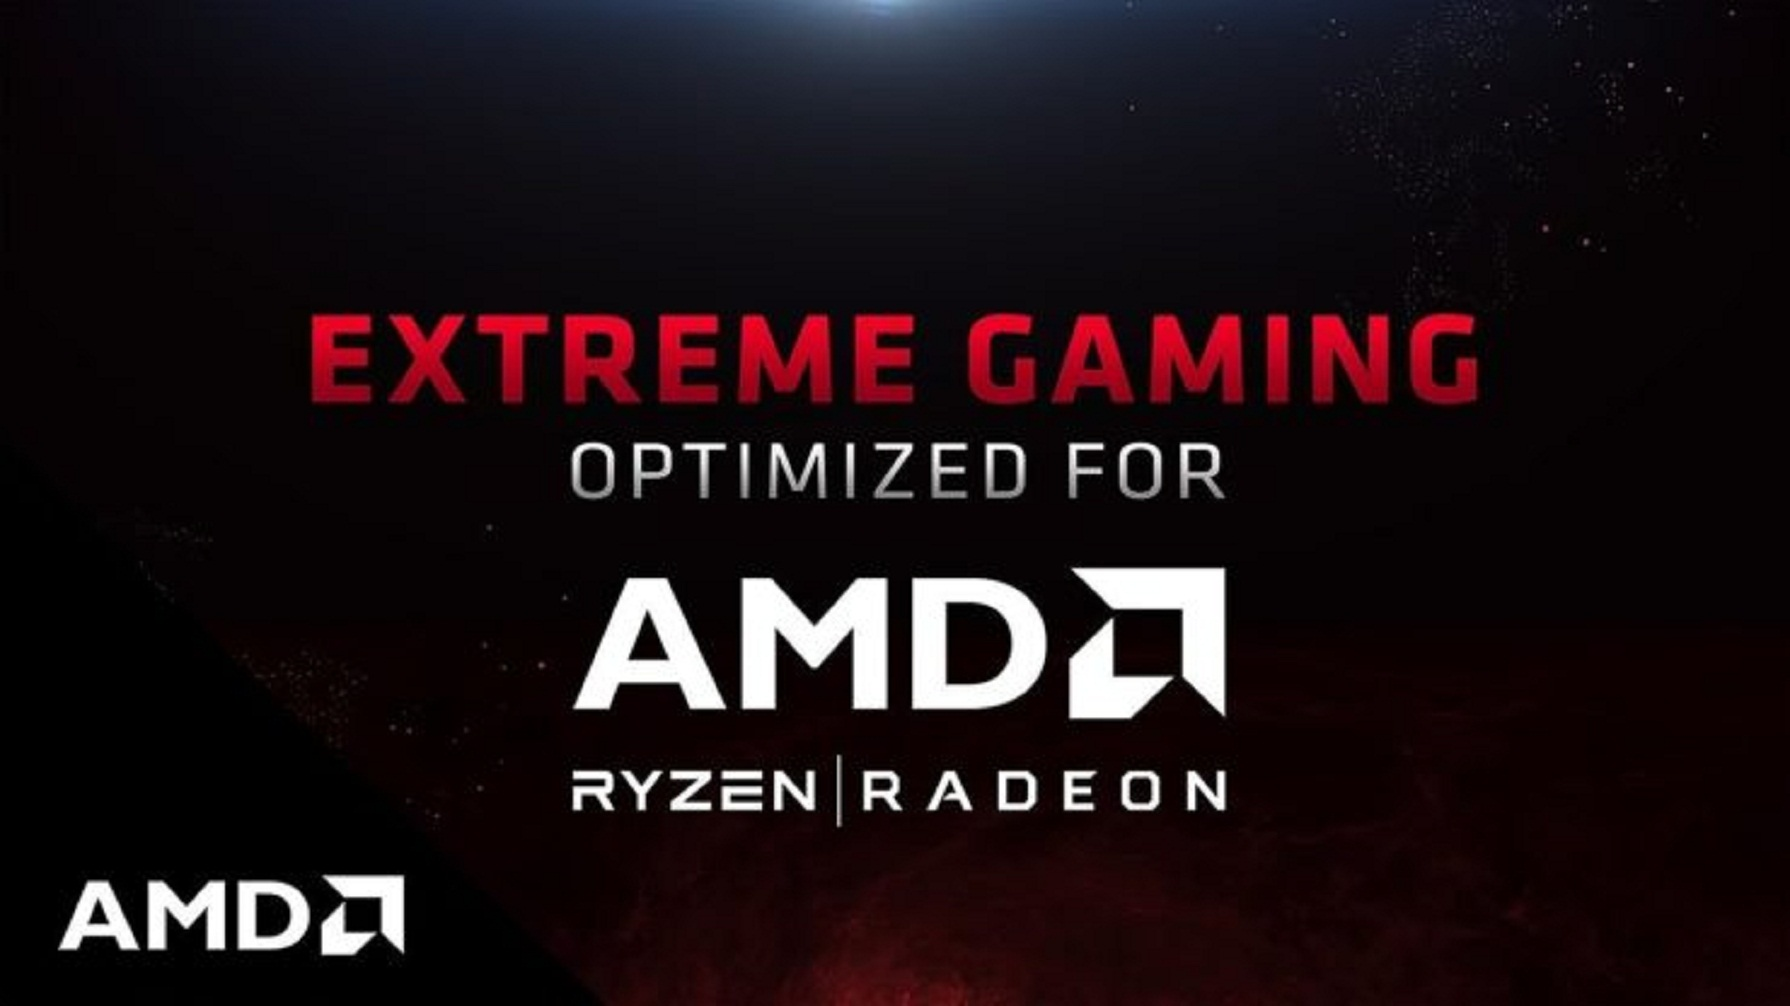 We Plan To Allow A Wider Population Make Use Of And Afford High-Performance GPU And CPU, Says AMD'S CTO